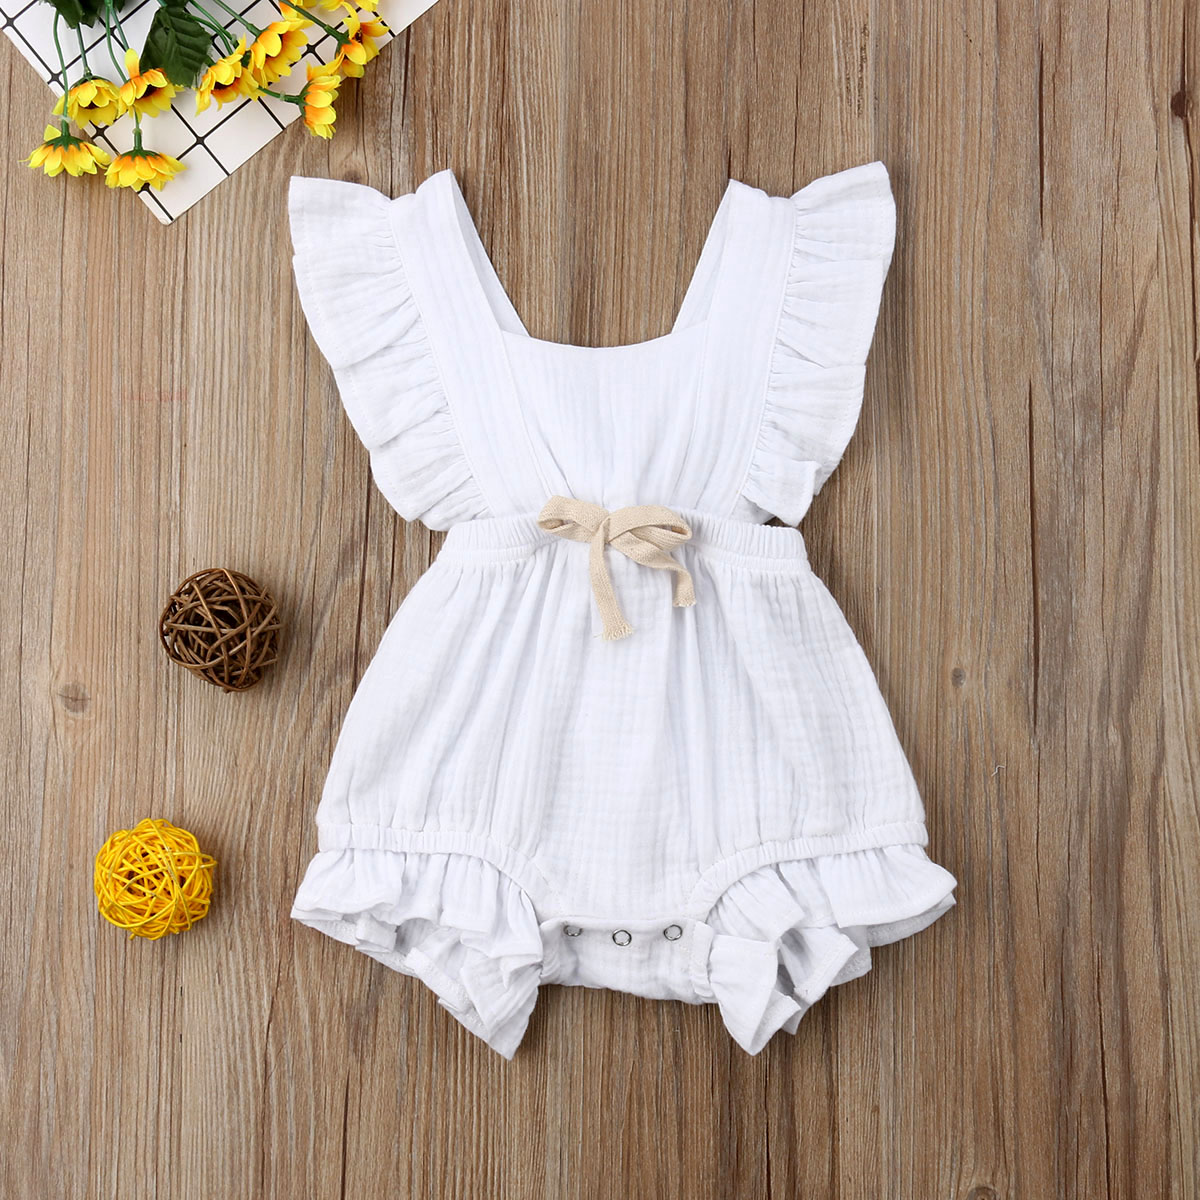 Baby Girl Sleeveless Ruffle Romper